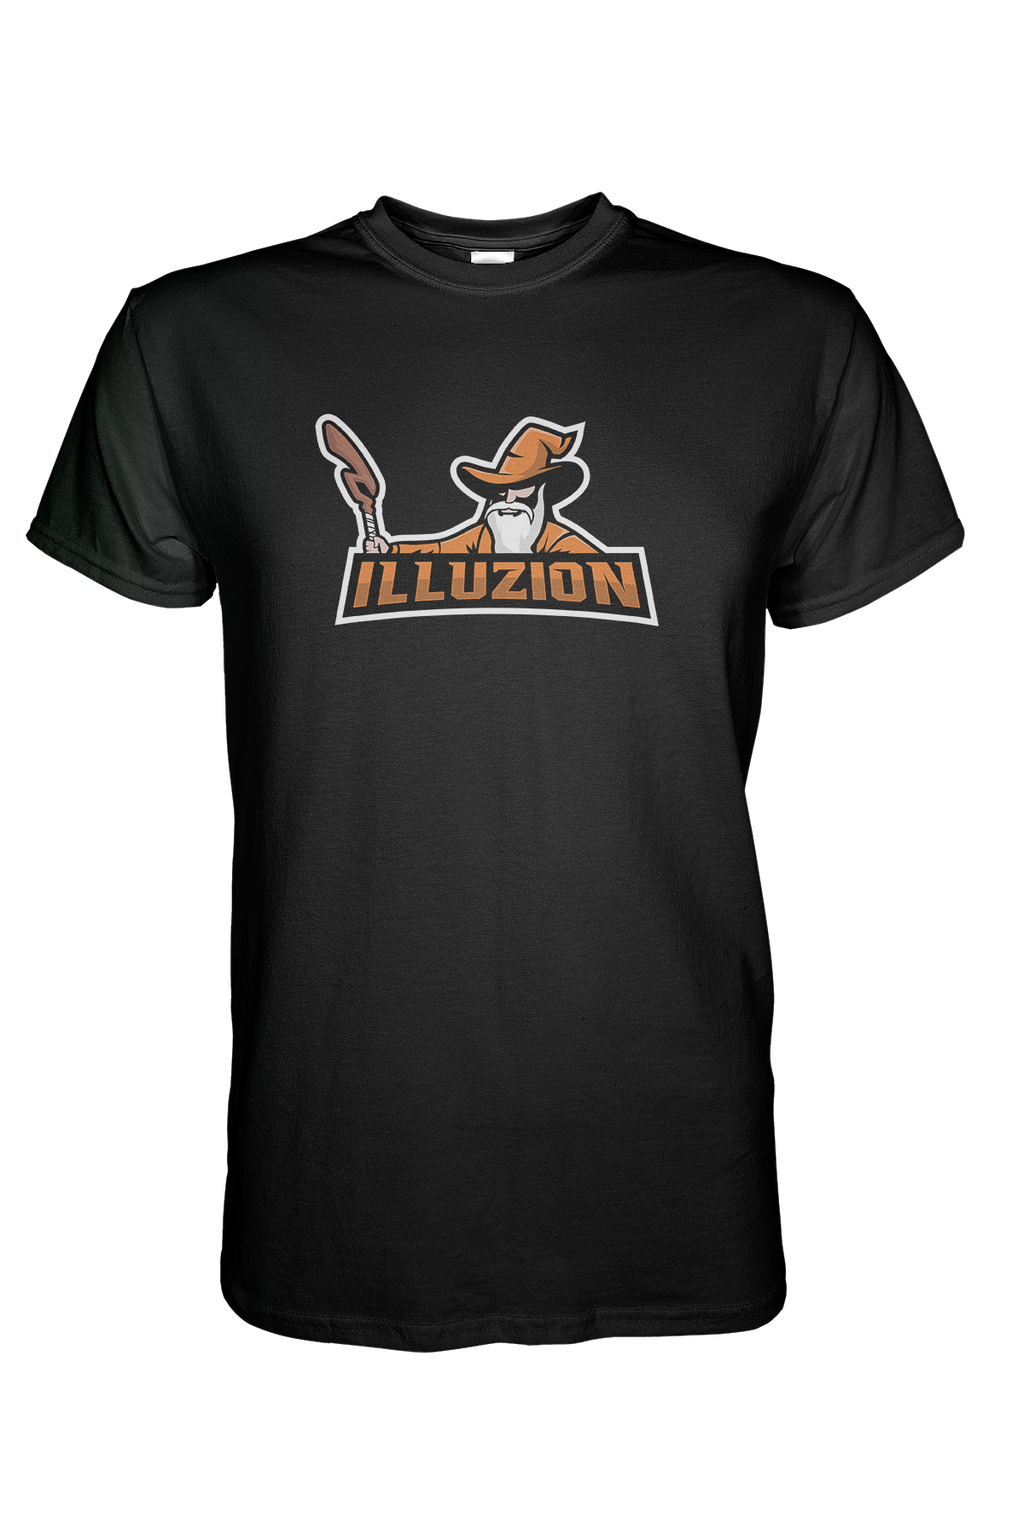 Illuzion Logo Shirt